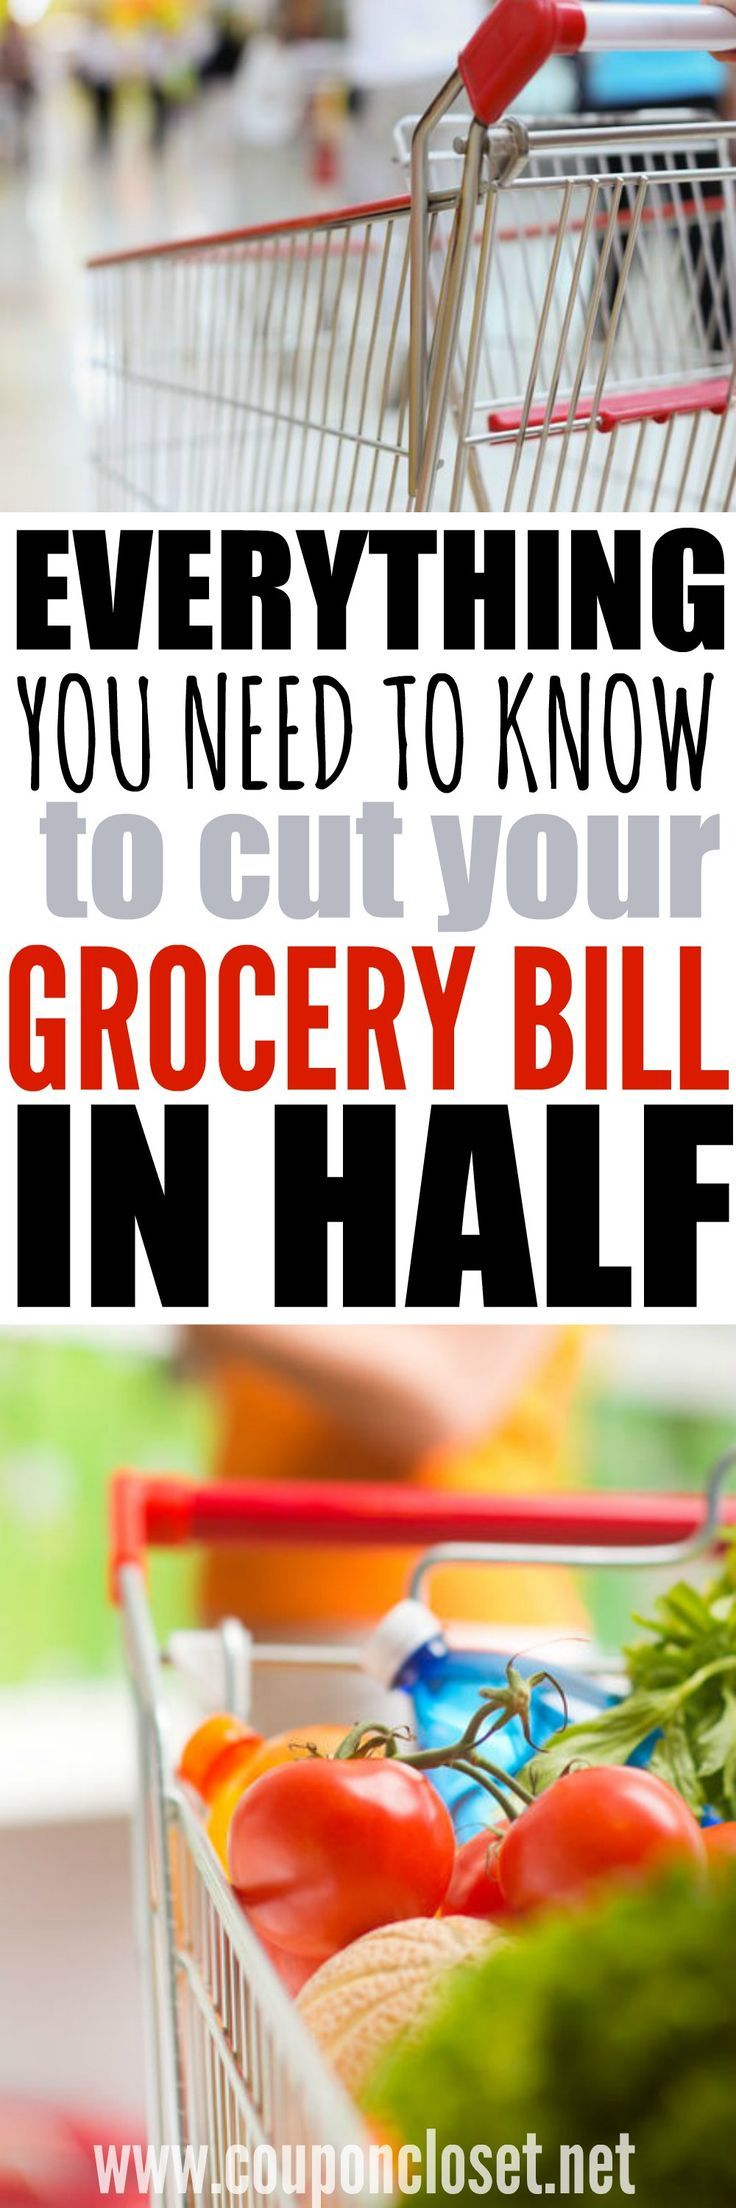 saving money on groceries - everything you need to know to save